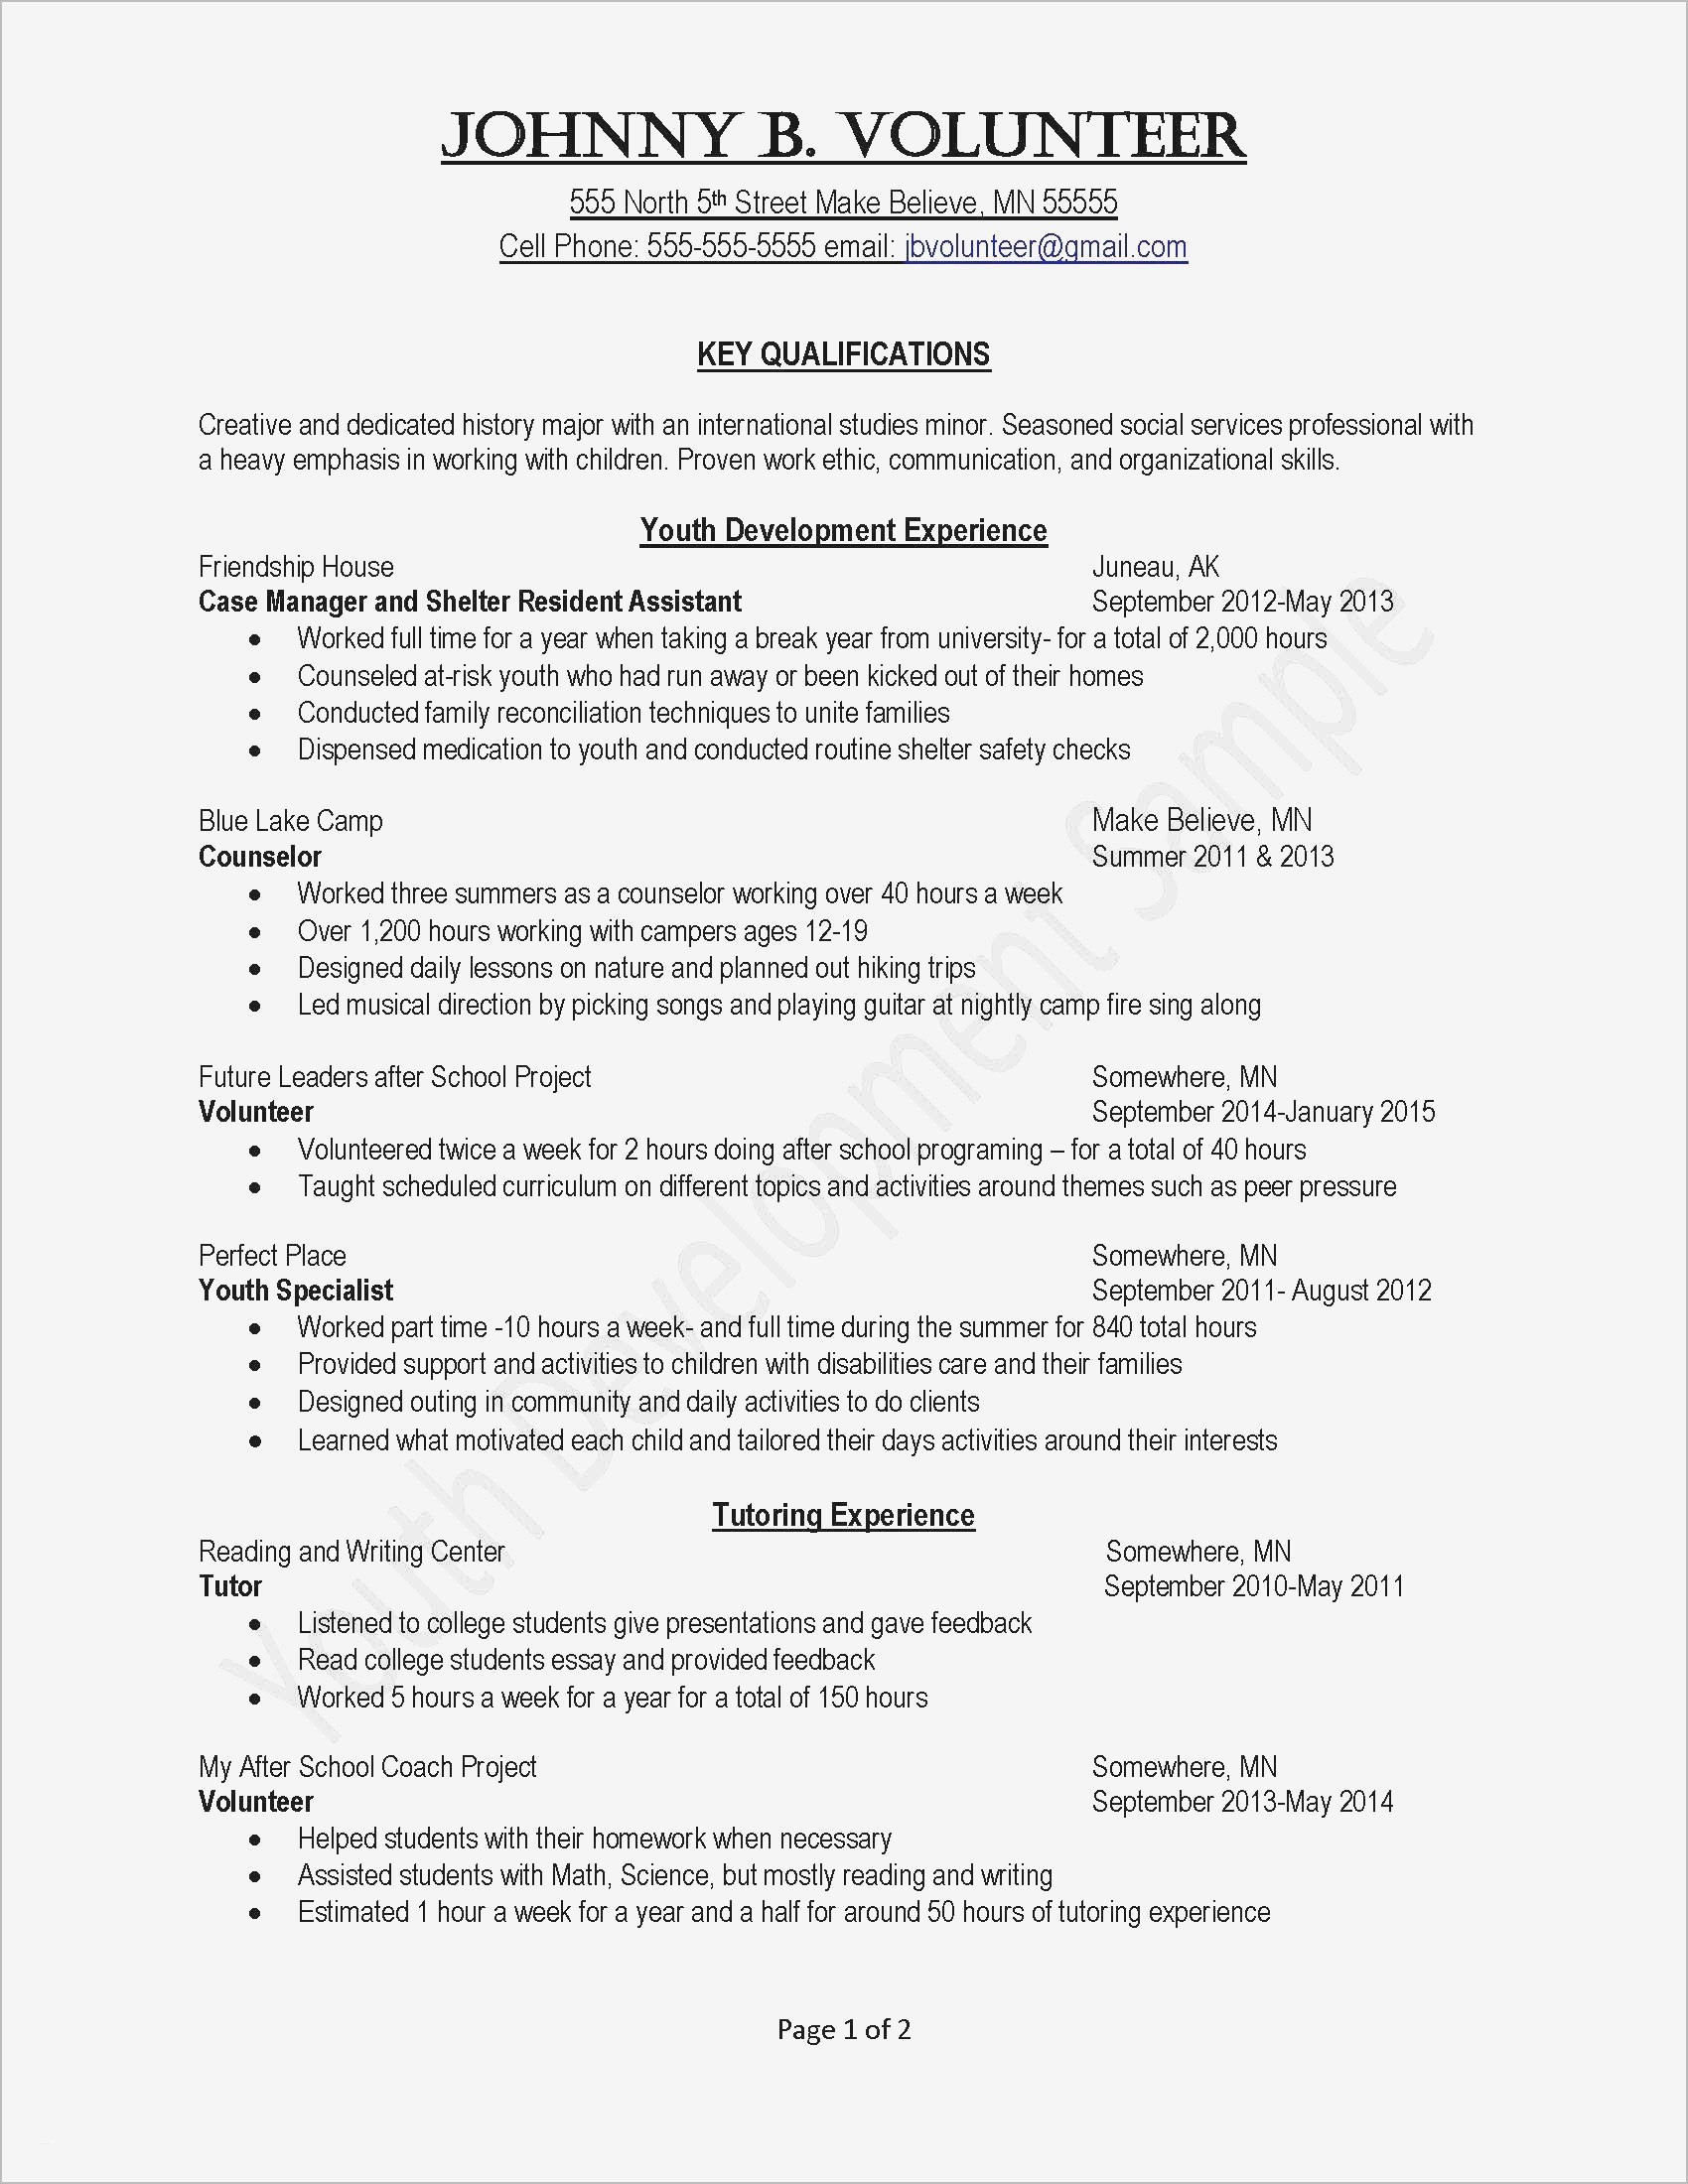 Impressive Cover Letter Template - Unique Cover Letter for Resume Template Free